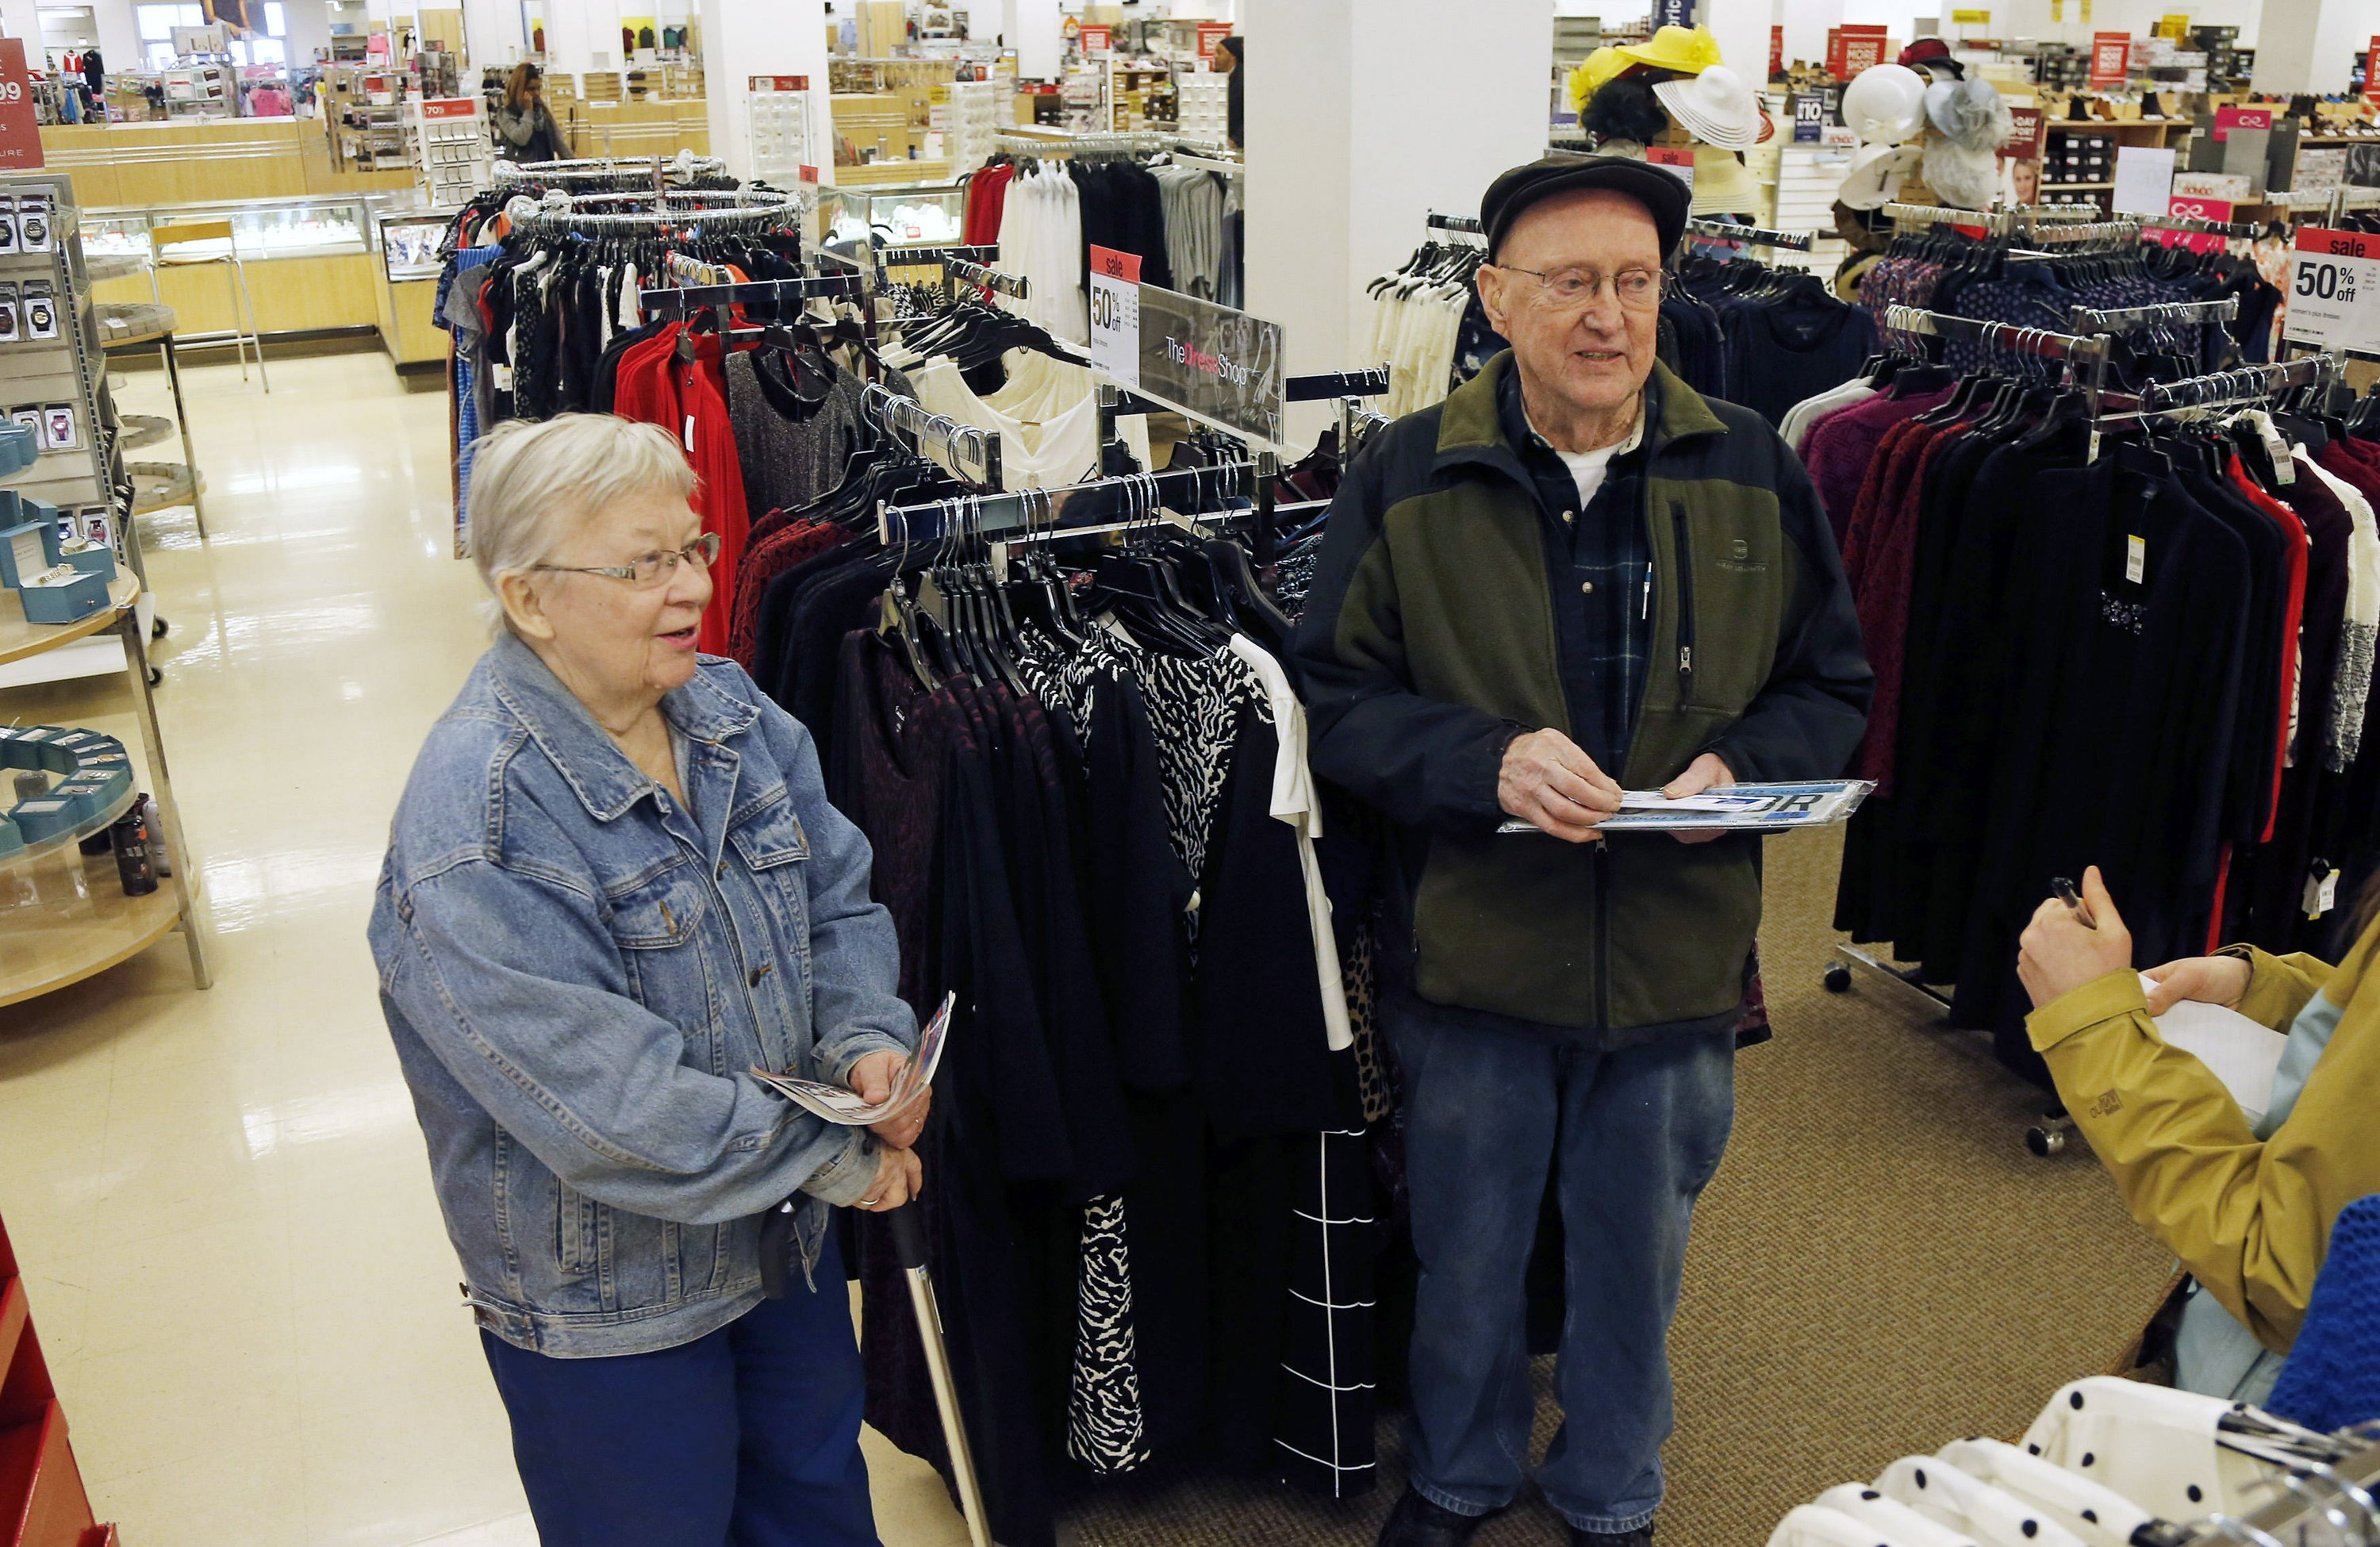 Hard times for Sears as retailer notes doubt about future